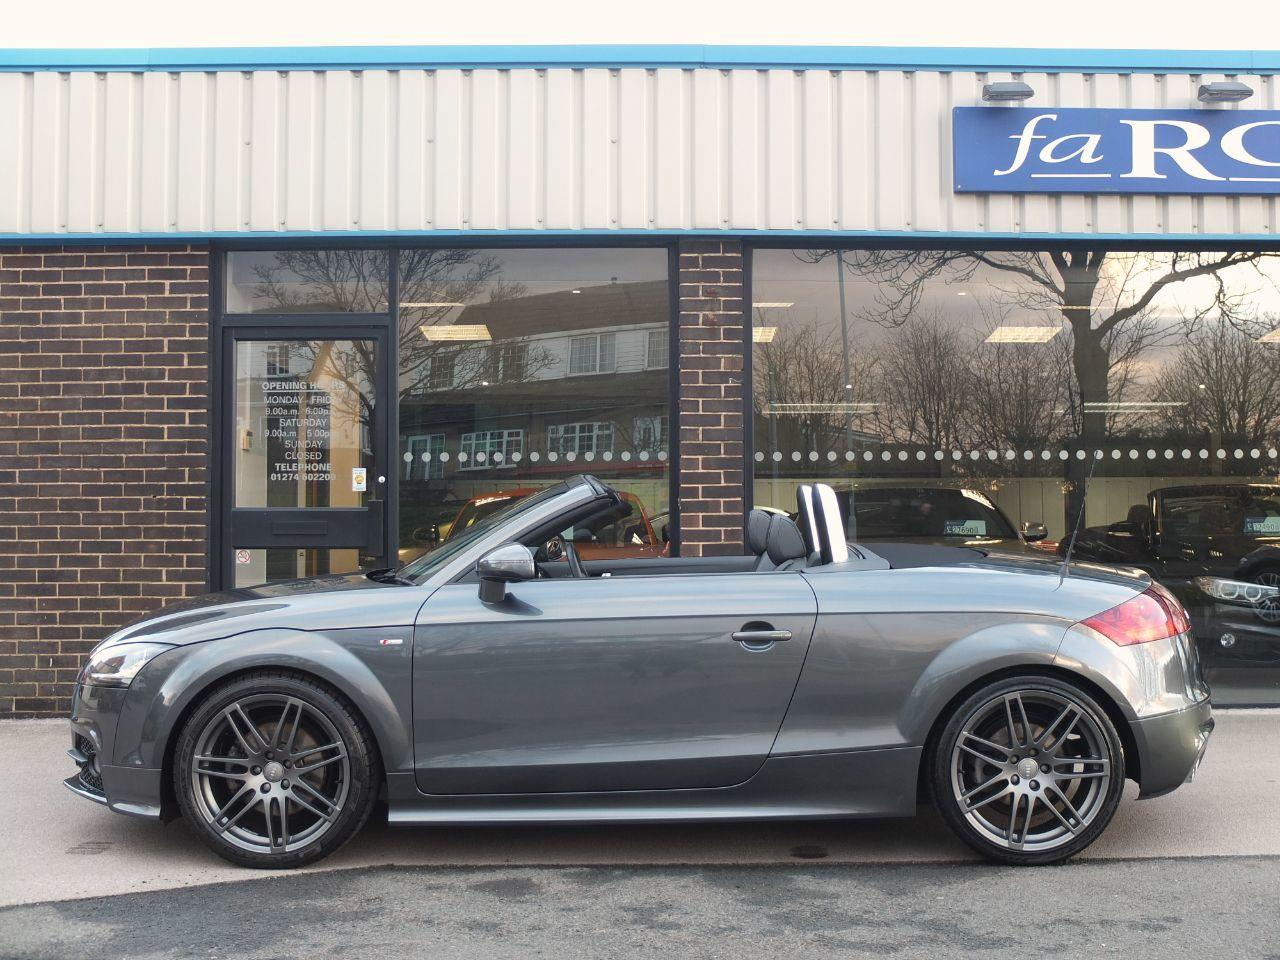 Audi TT Roadster 2.0 TDI 170 ps quattro Black Edition Convertible Diesel Daytona Grey Metallic